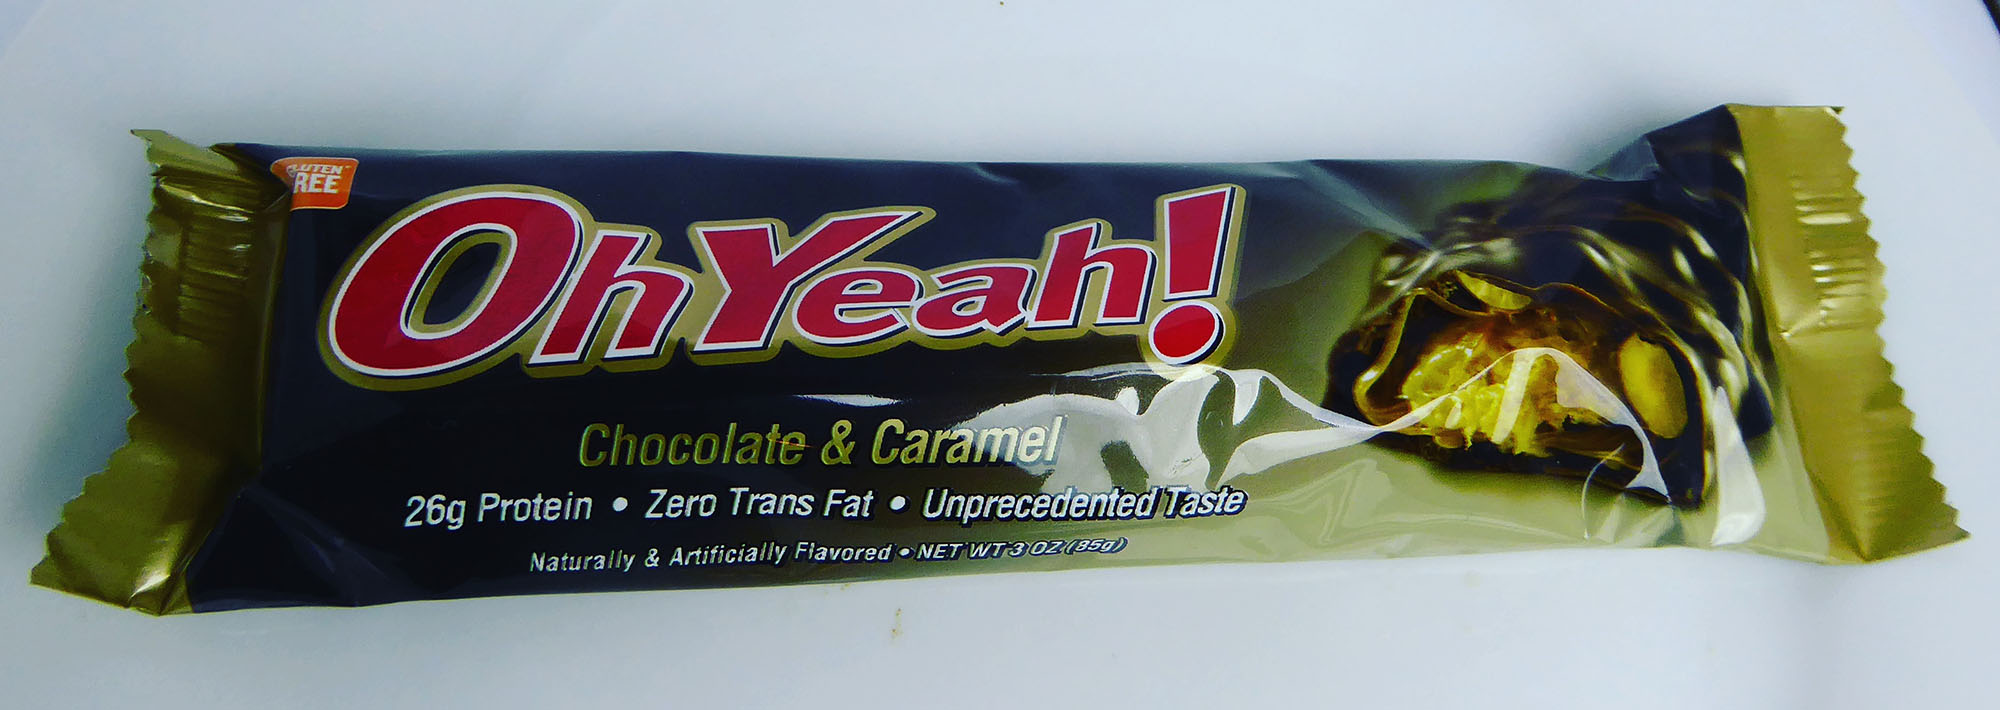 OhYeah! Protein Bar Chocolate Caramel